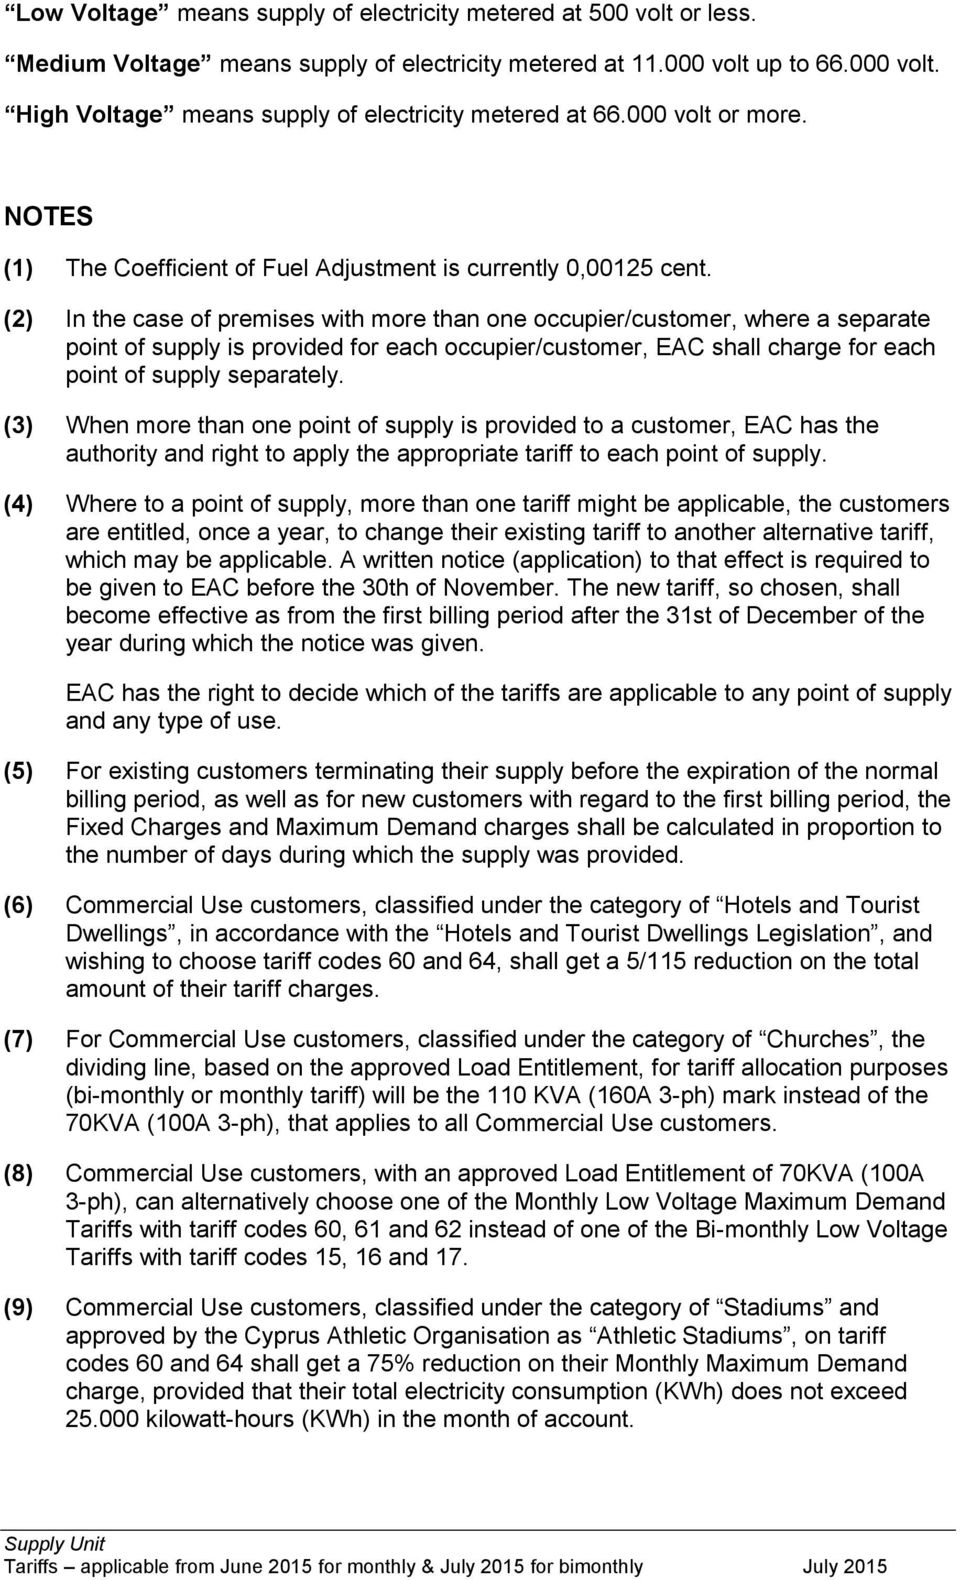 (2) In the case of premises with more than one occupier/customer, where a separate point of supply is provided for each occupier/customer, EAC shall charge for each point of supply separately.